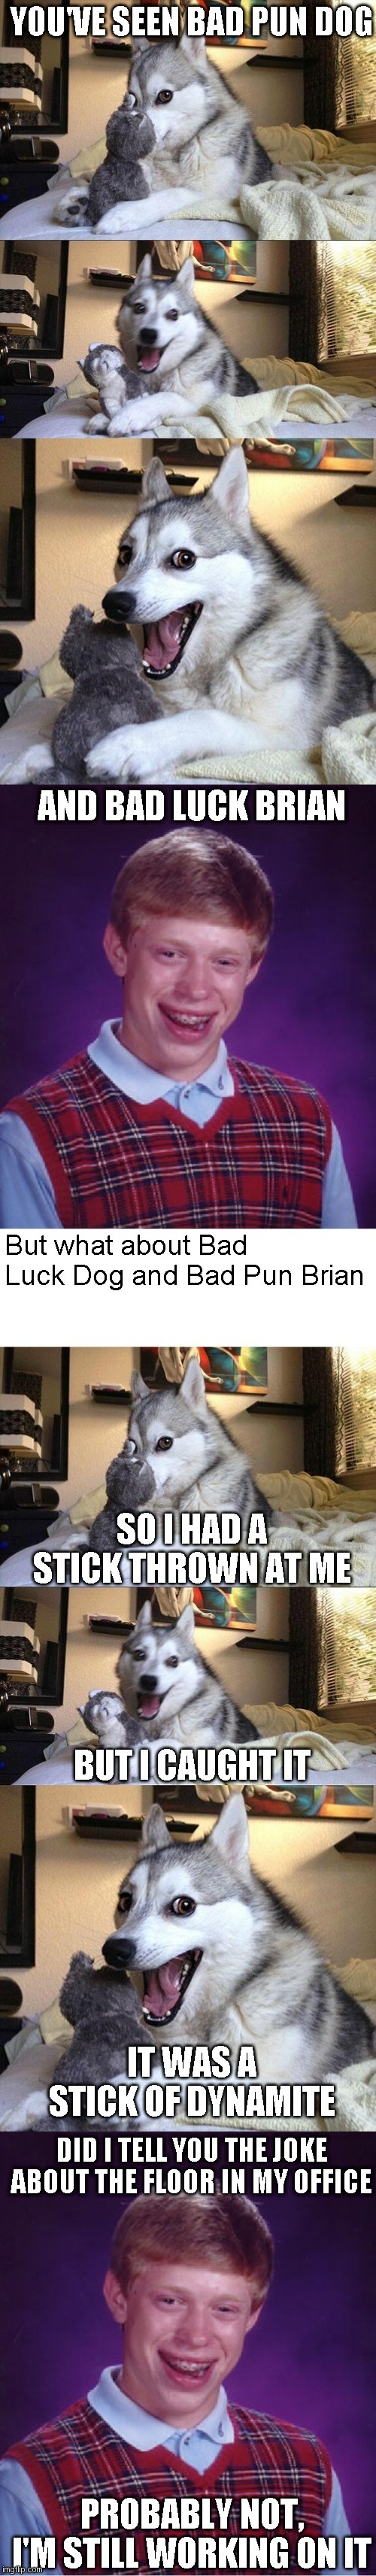 Bad Pun Brain and Bad Luck Dog | image tagged in memes,bad luck brian,bad pun dog | made w/ Imgflip meme maker